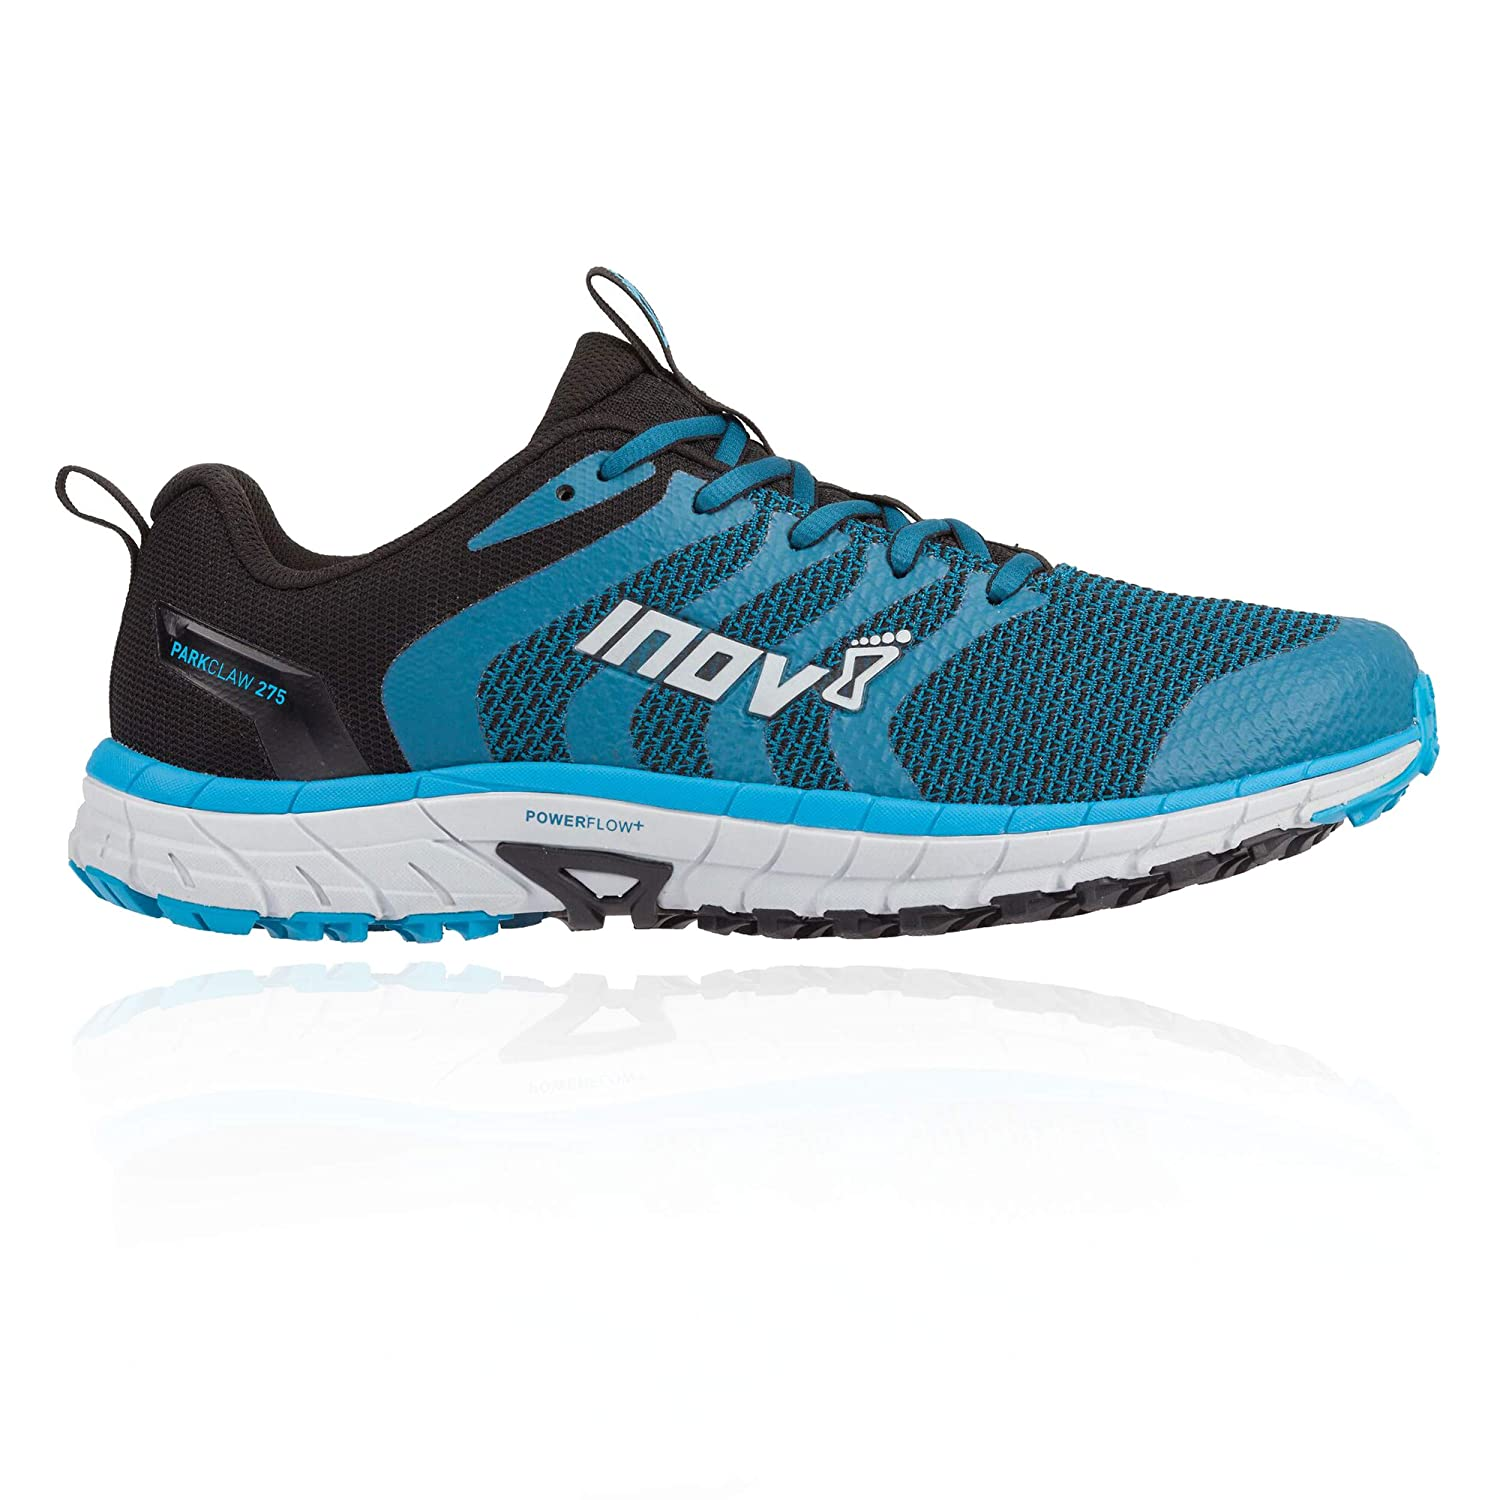 new arrival f0169 49e6a Inov8 Parkclaw 275 Knit Trail Running Shoes